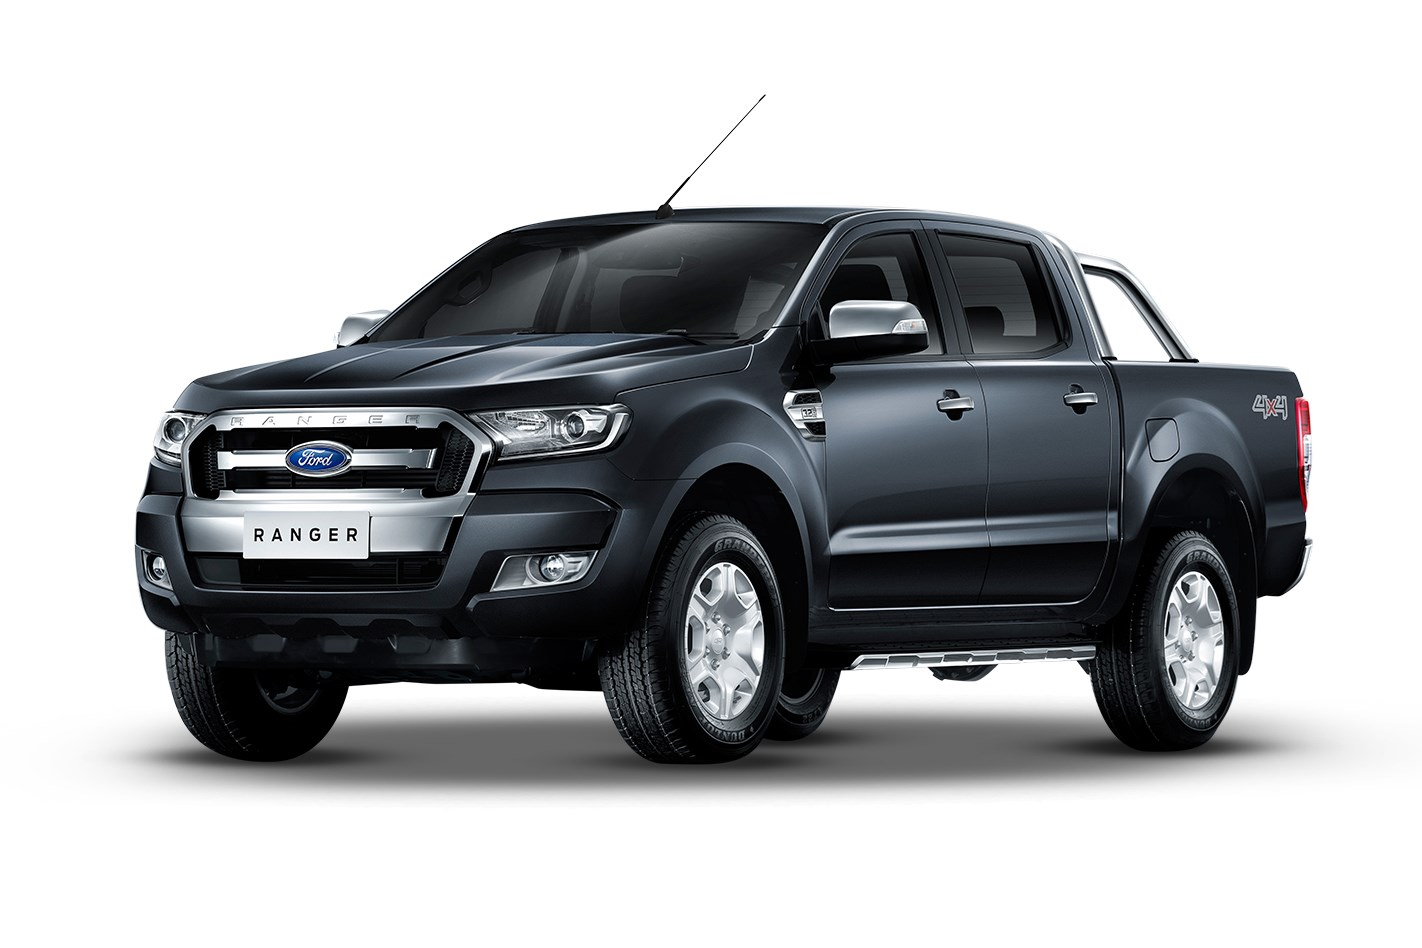 100 ford ranger 4x4 ford ranger forum high. Black Bedroom Furniture Sets. Home Design Ideas